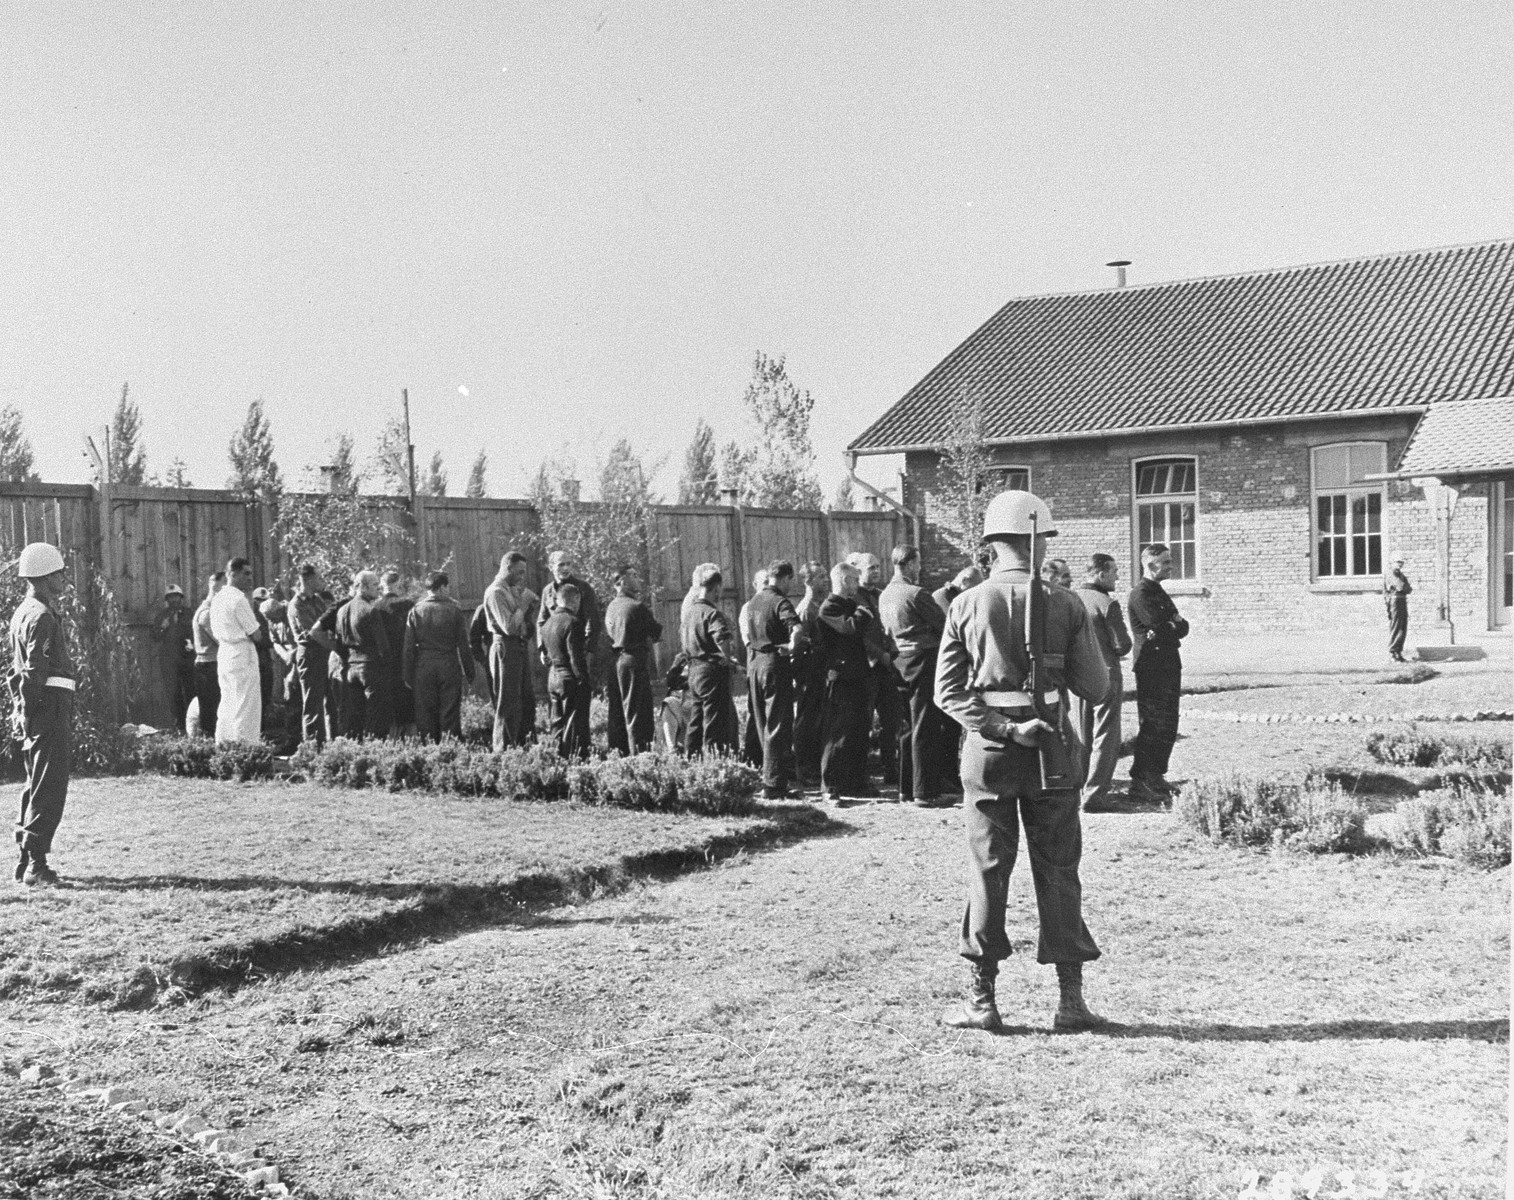 The 31 former camp personnel and prisoners on trial for crimes committed at Buchenwald wait in the courtyard by the courtroom on the day they are to be sentenced.